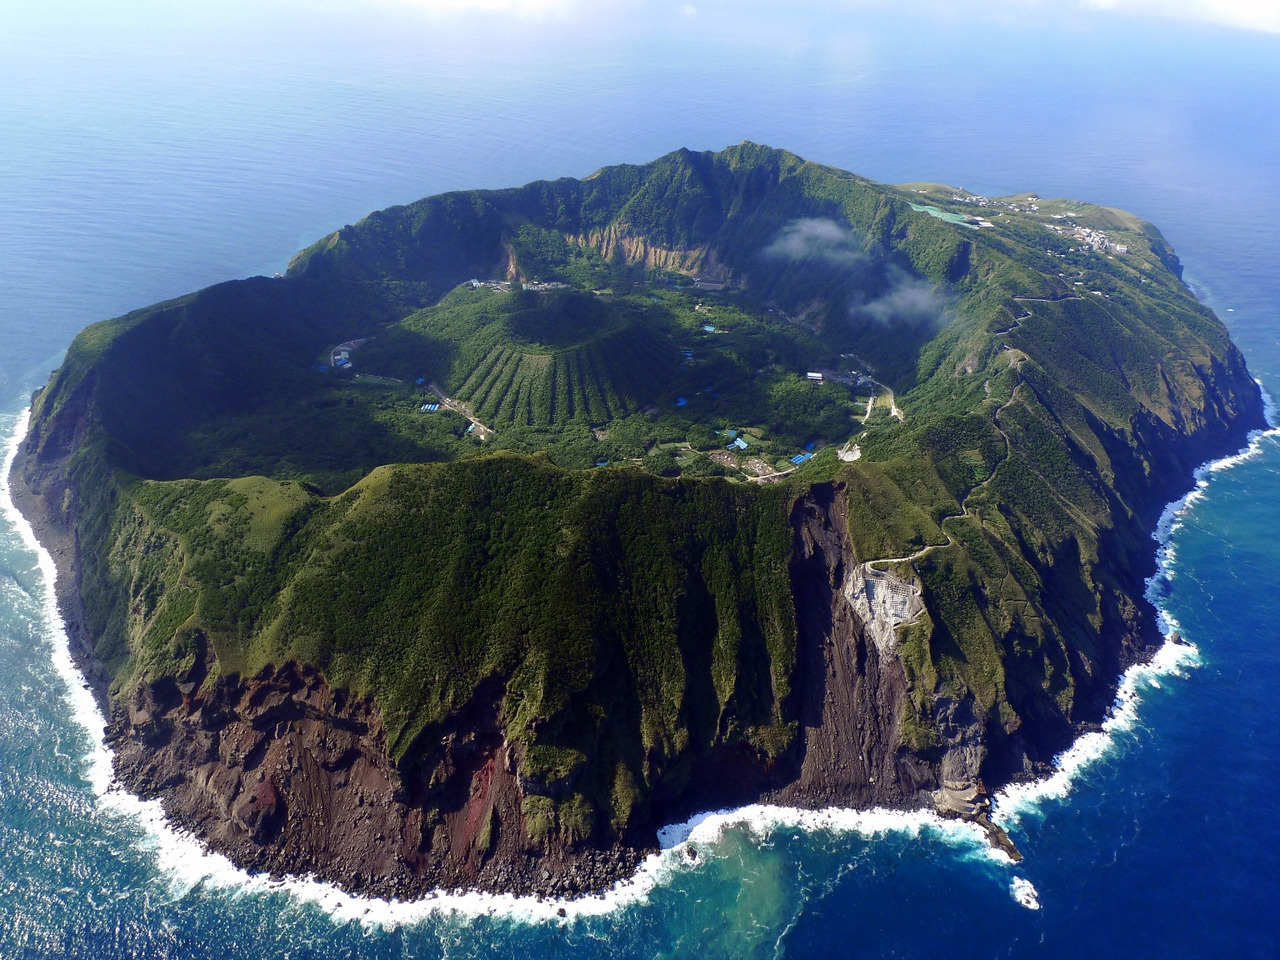 Seclusion from the world. Aogashima, Japan.